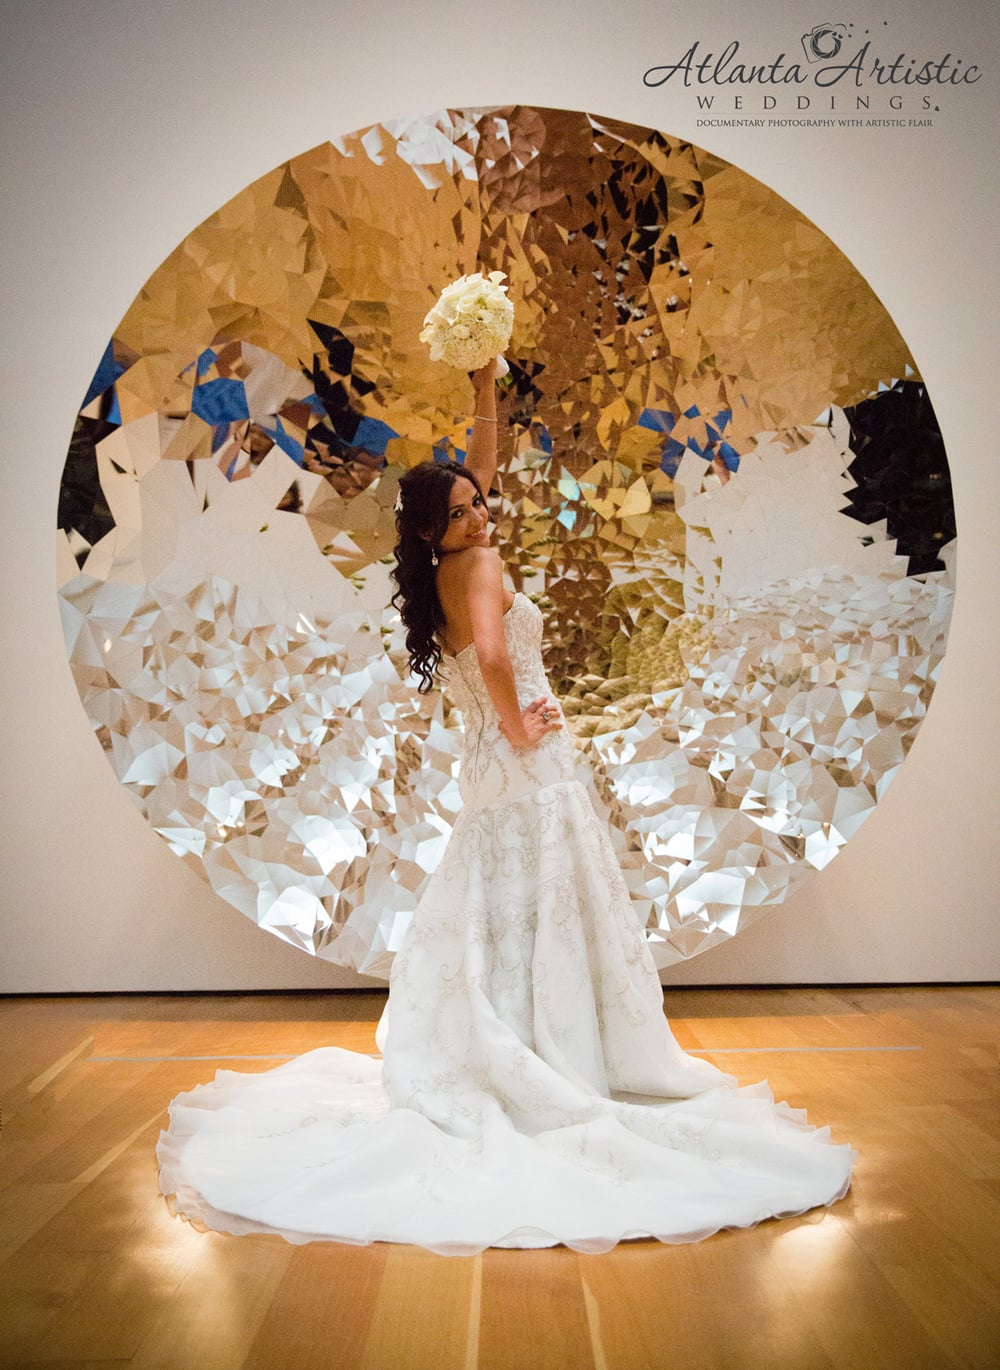 The High Museum of Art is wonderful venue for your wedding - by www.atlantaartisticwedding.com